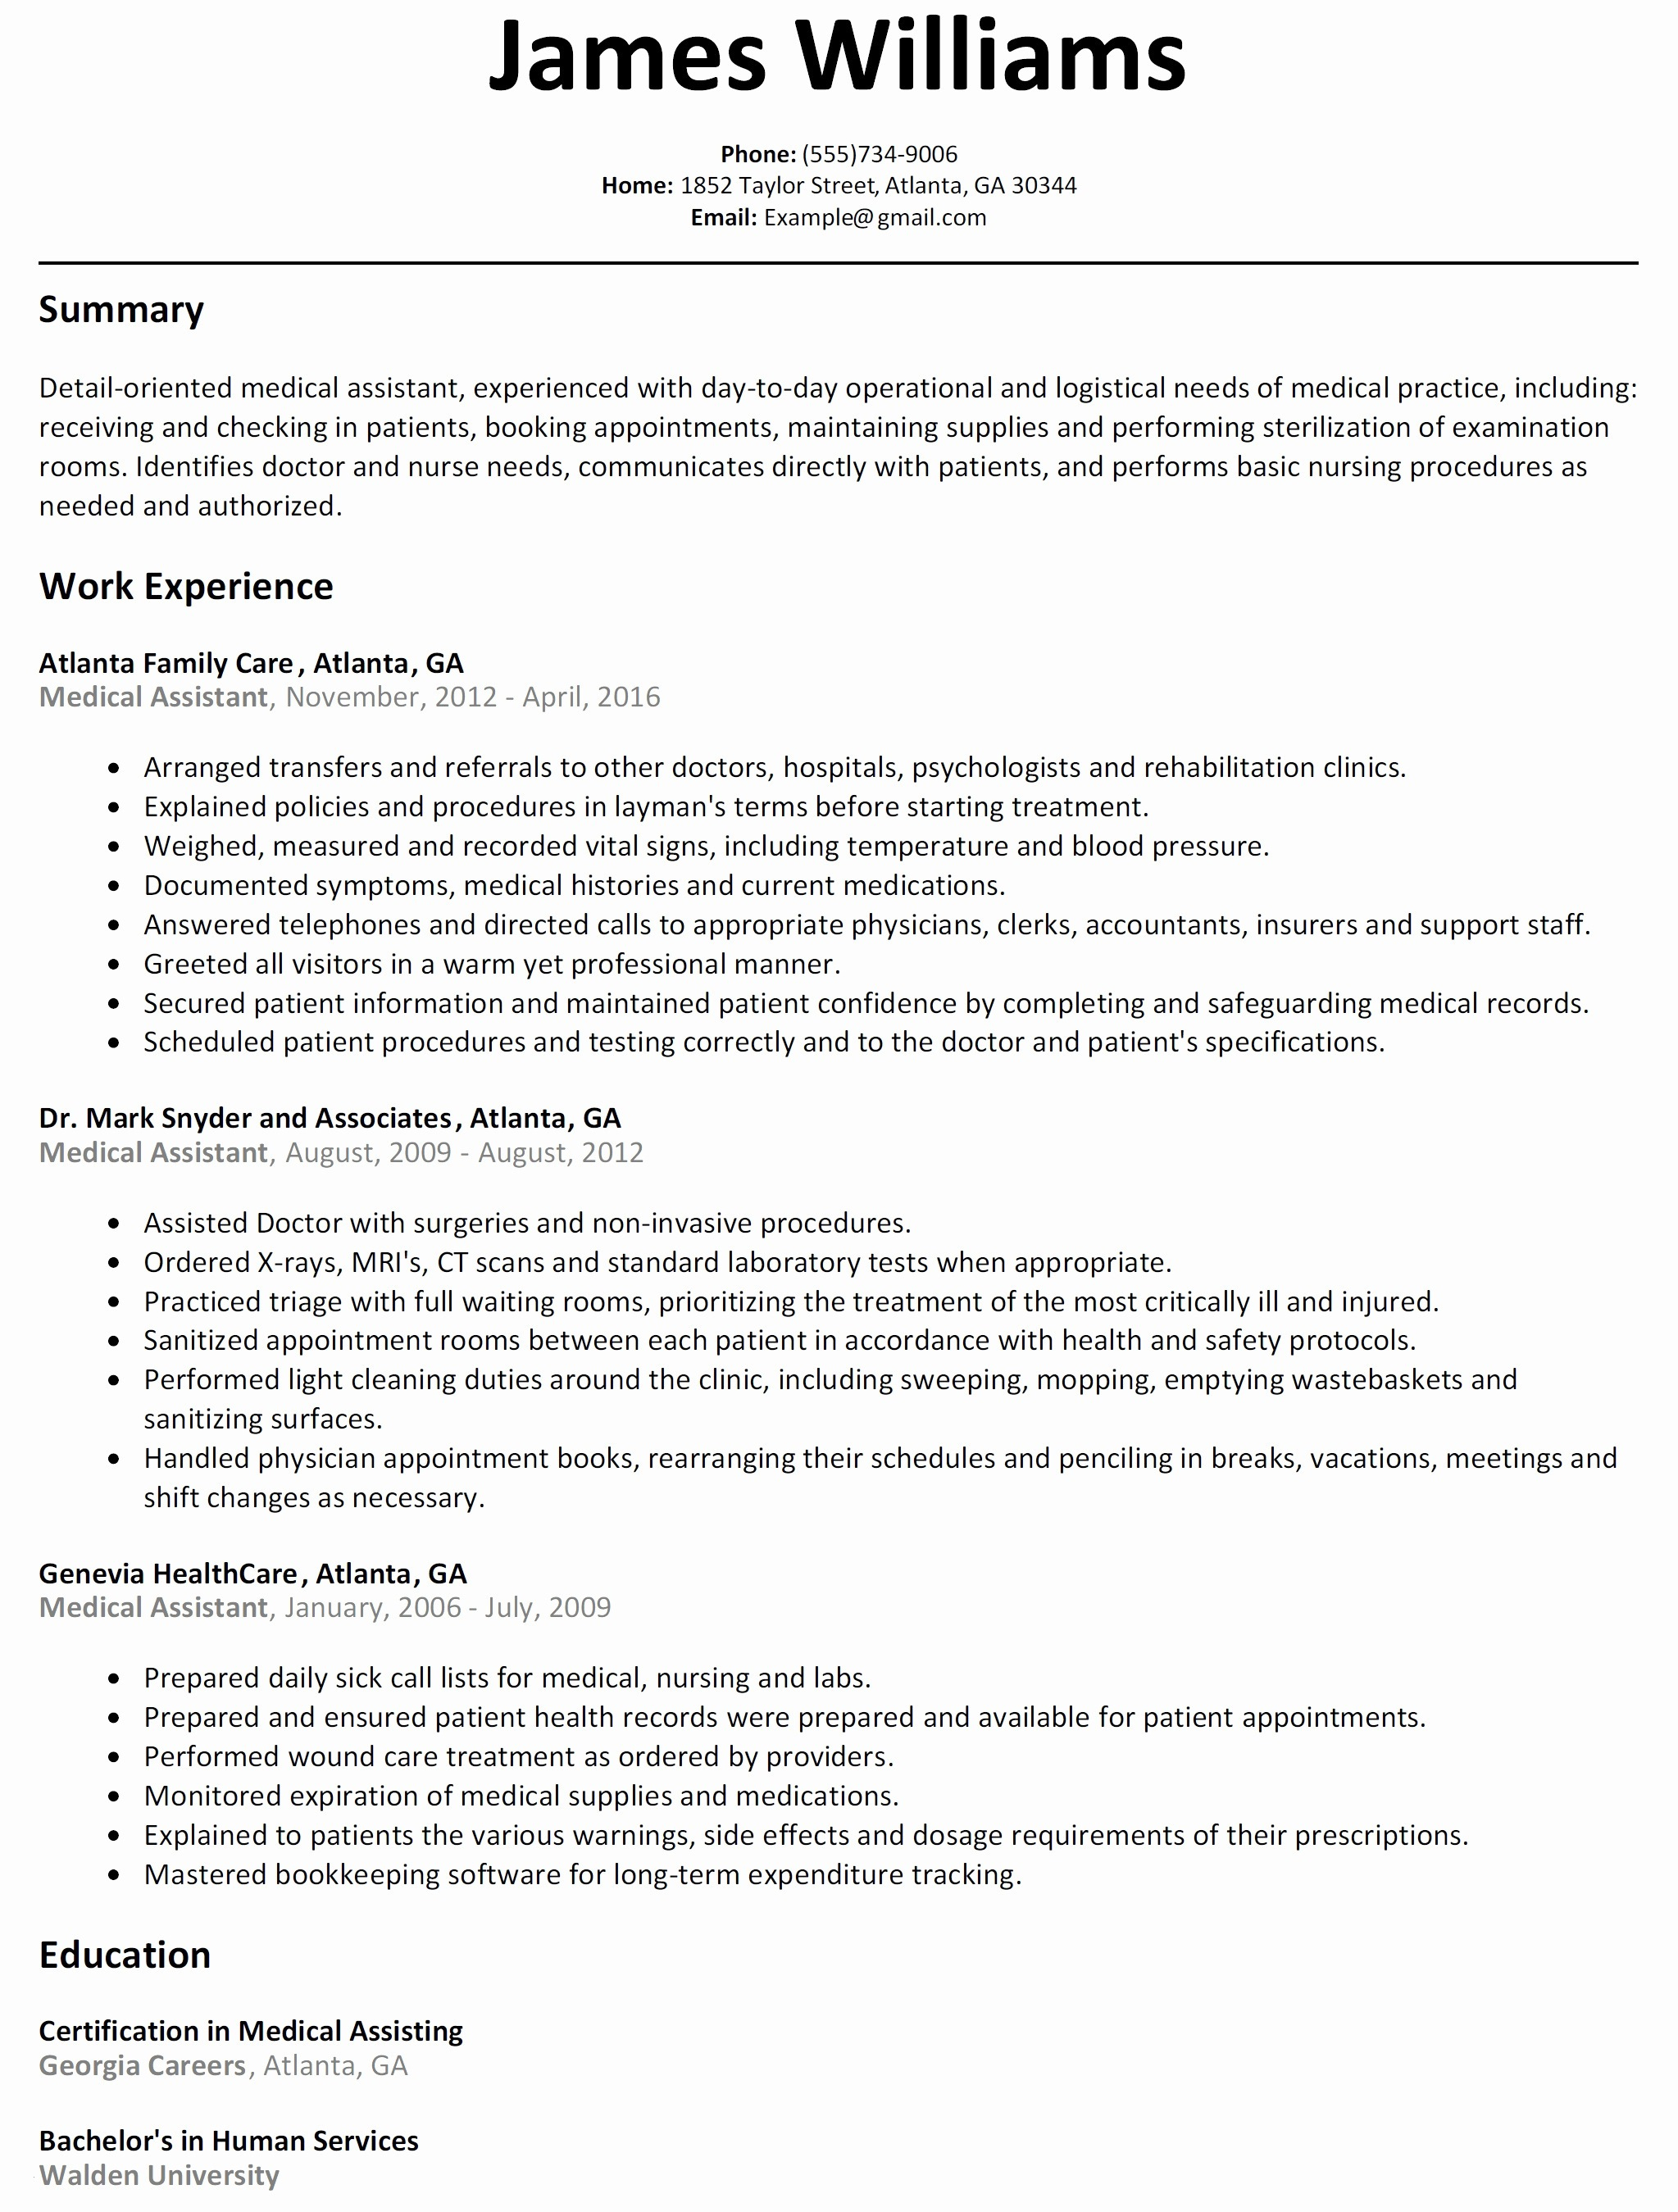 Nurse Resume Template Word - Interesting Resume format Awesome Simple Resume format In Word